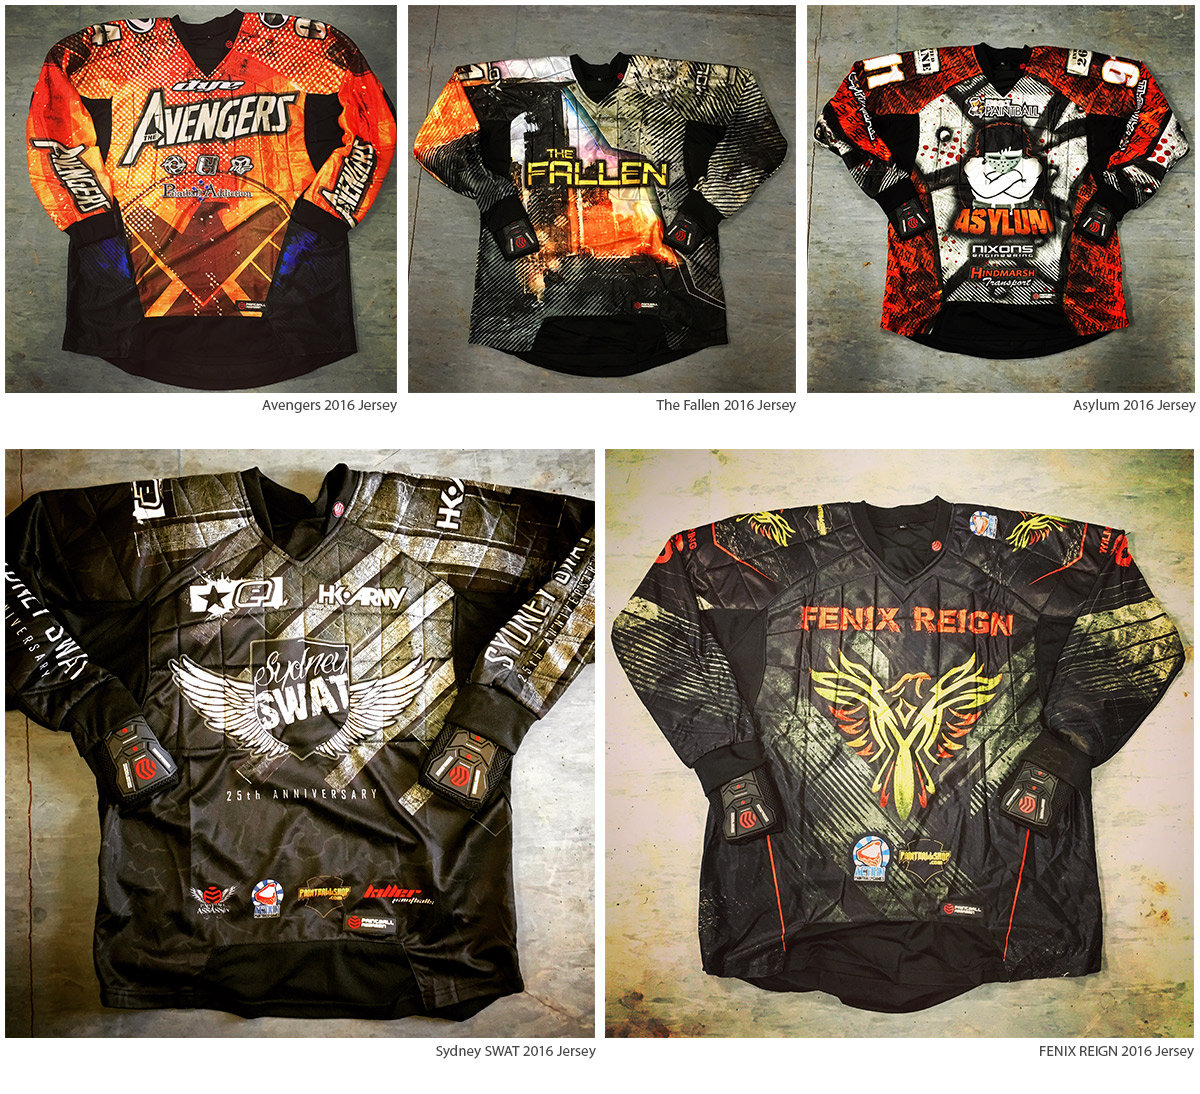 paintballshop-paintball-assassin-custom-jerseys-references.jpg